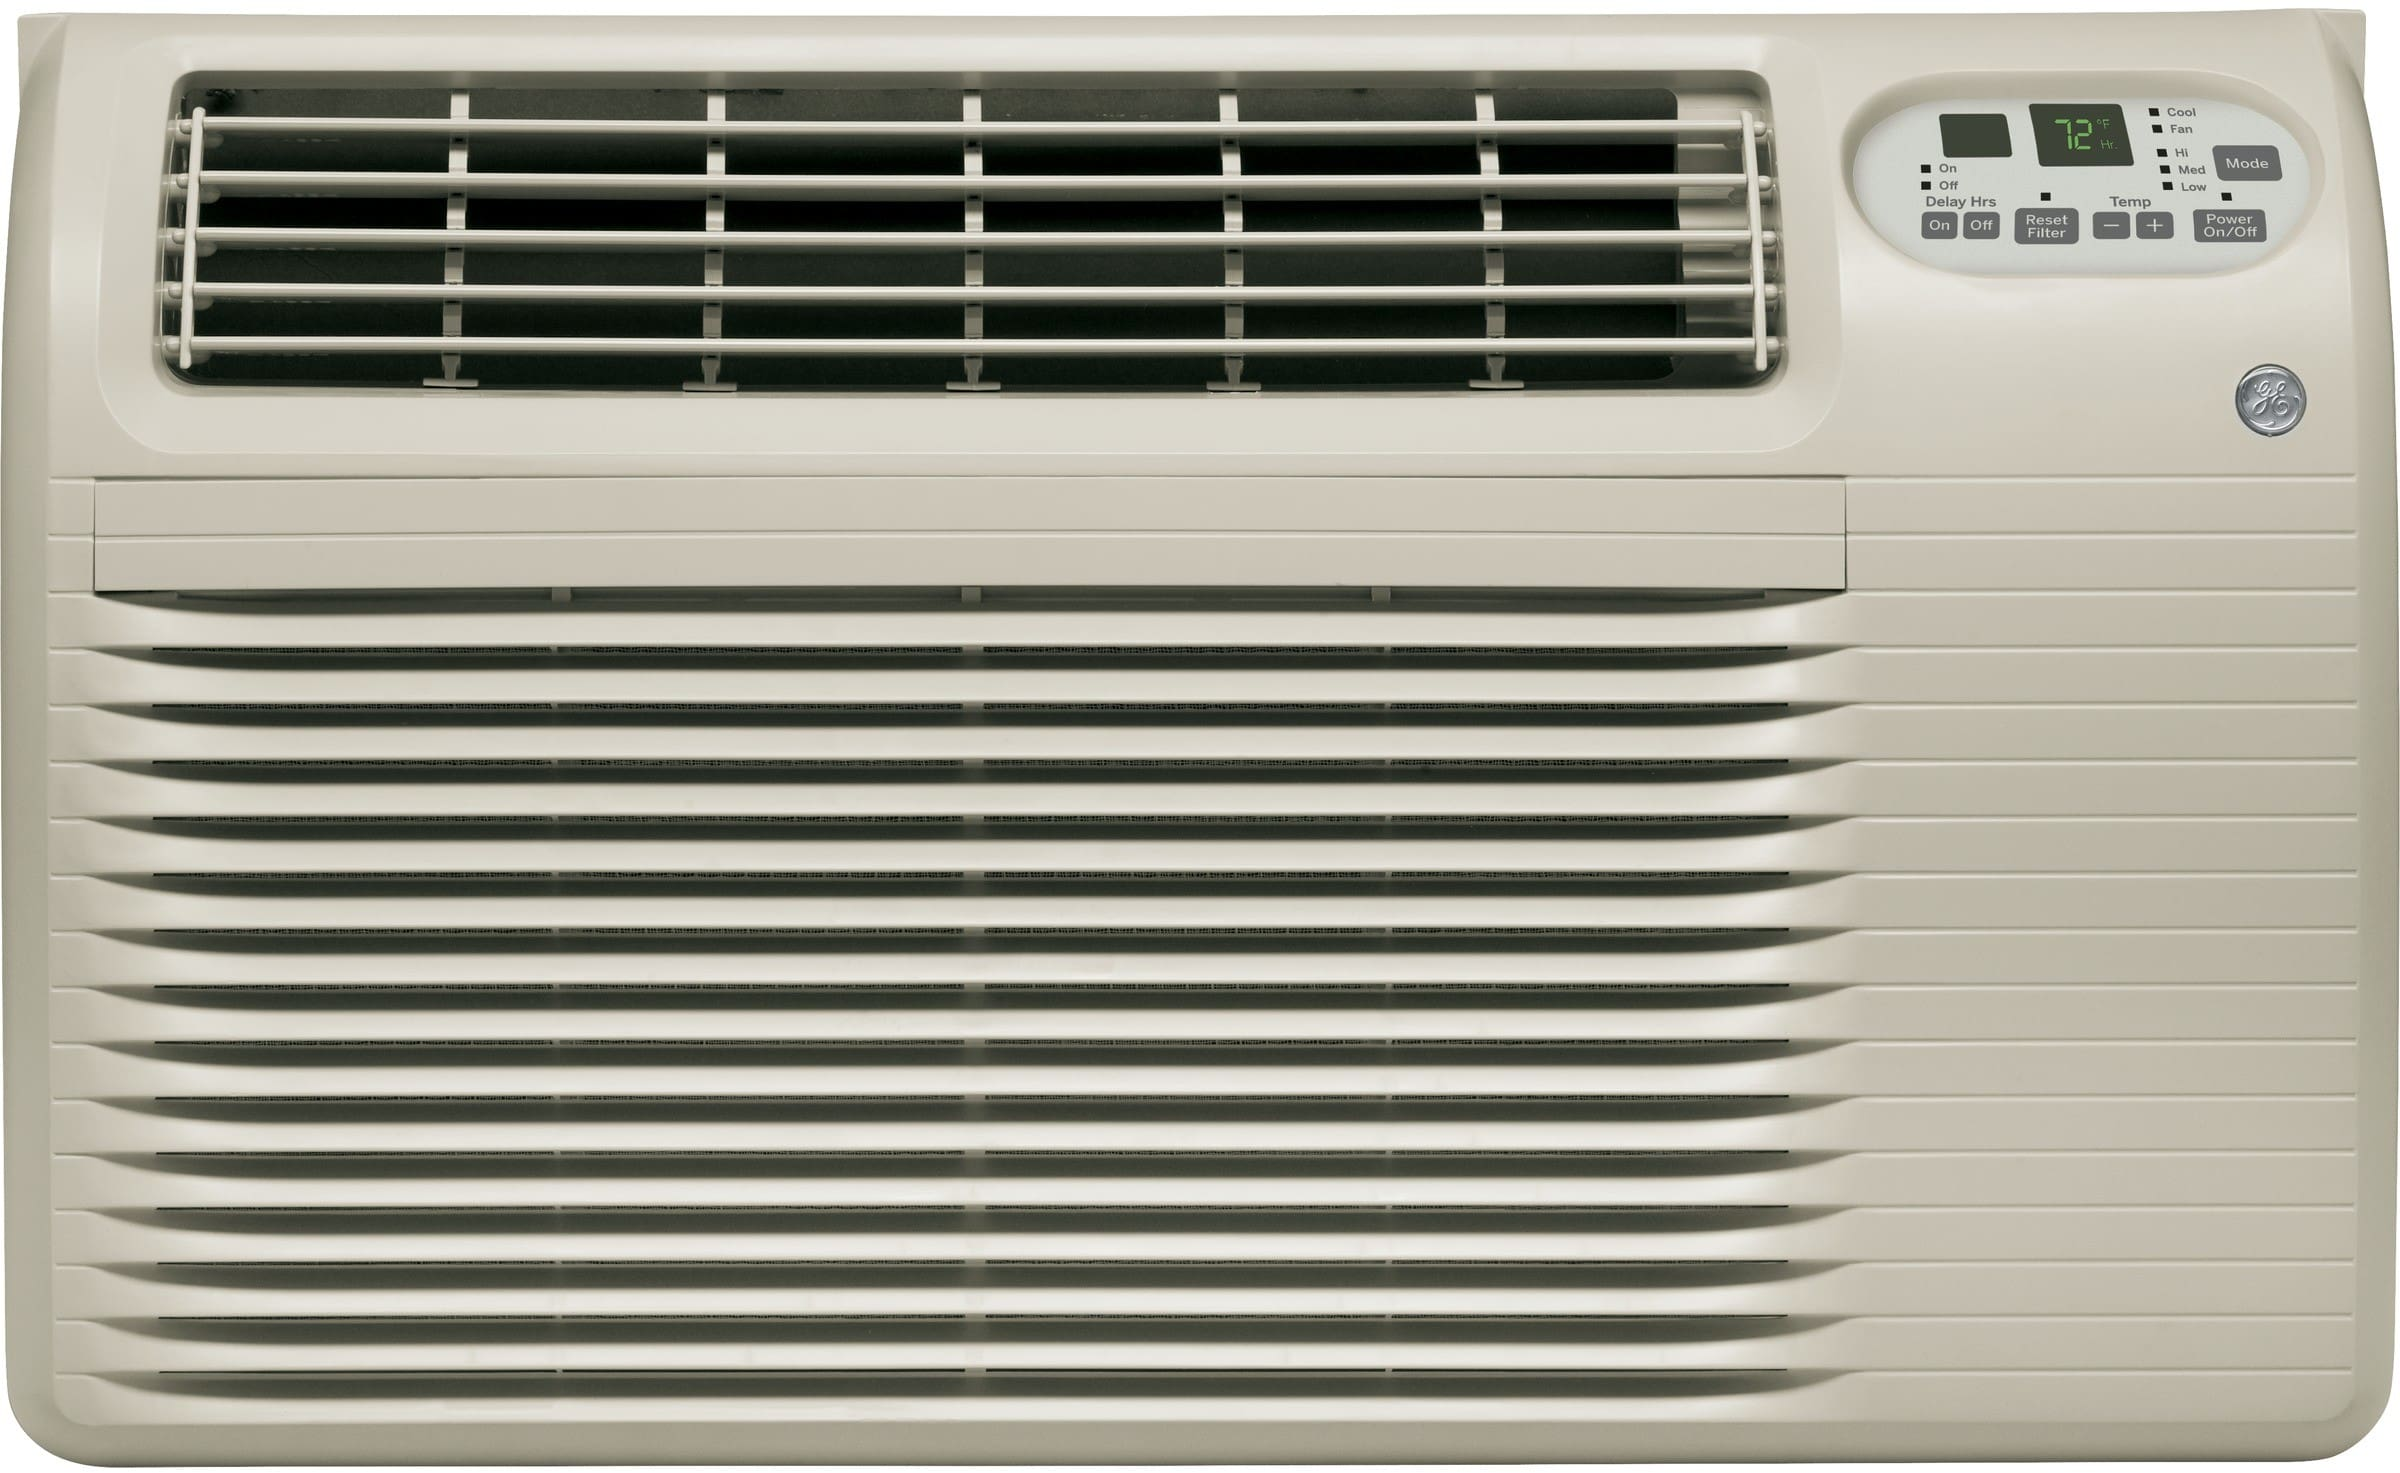 ge ajcq12dcg btu wall air conditioner with 270 cfm 106 eer 34 ptshr capacity washable filter 3 fan speeds electronic digital